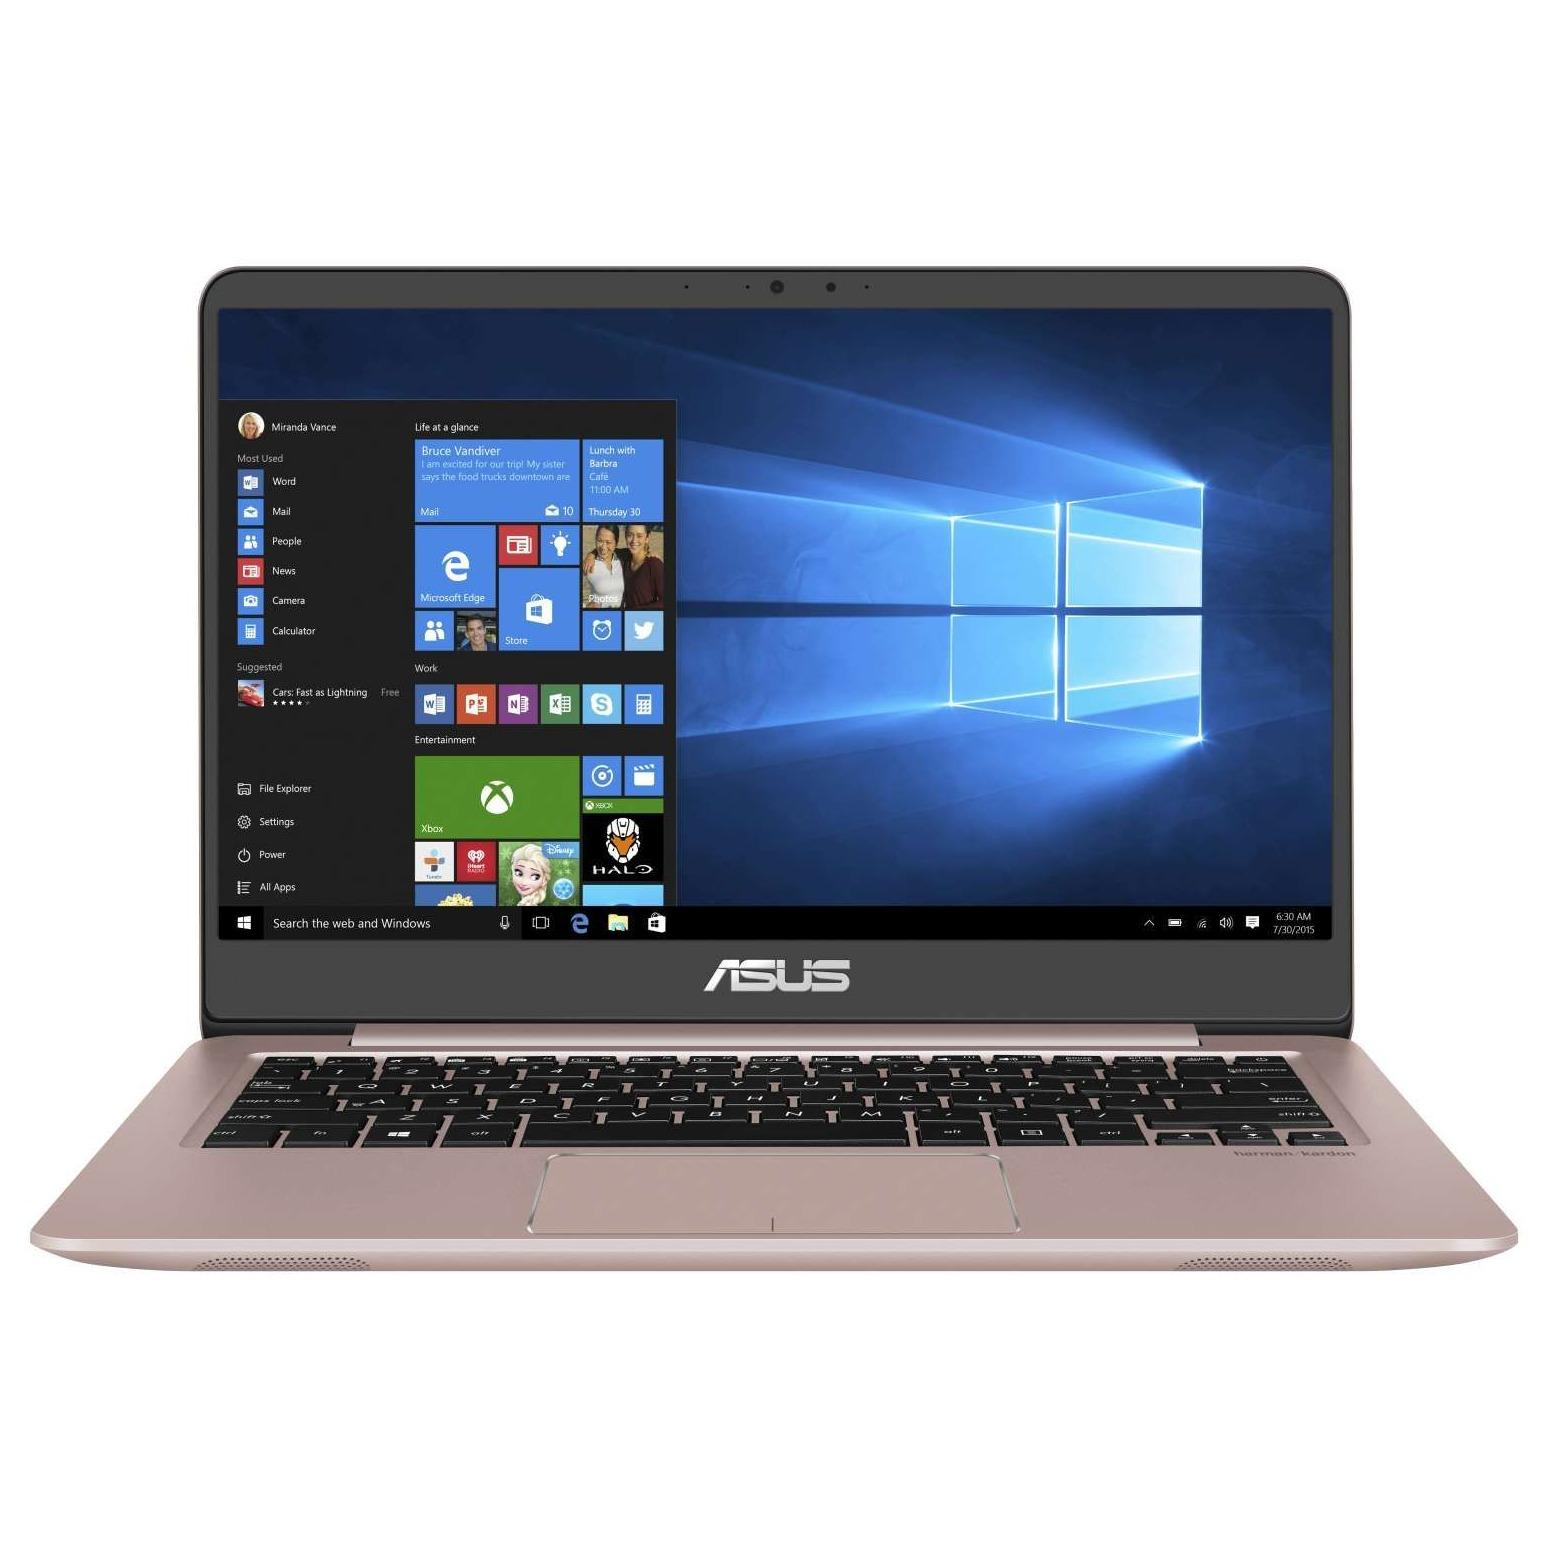 ASUS UX410UA-GV349T 14 INCH FULL HD  INTEL CORE I5-8250U 8GB 128GB SSD + 1TB HDD WIN 10